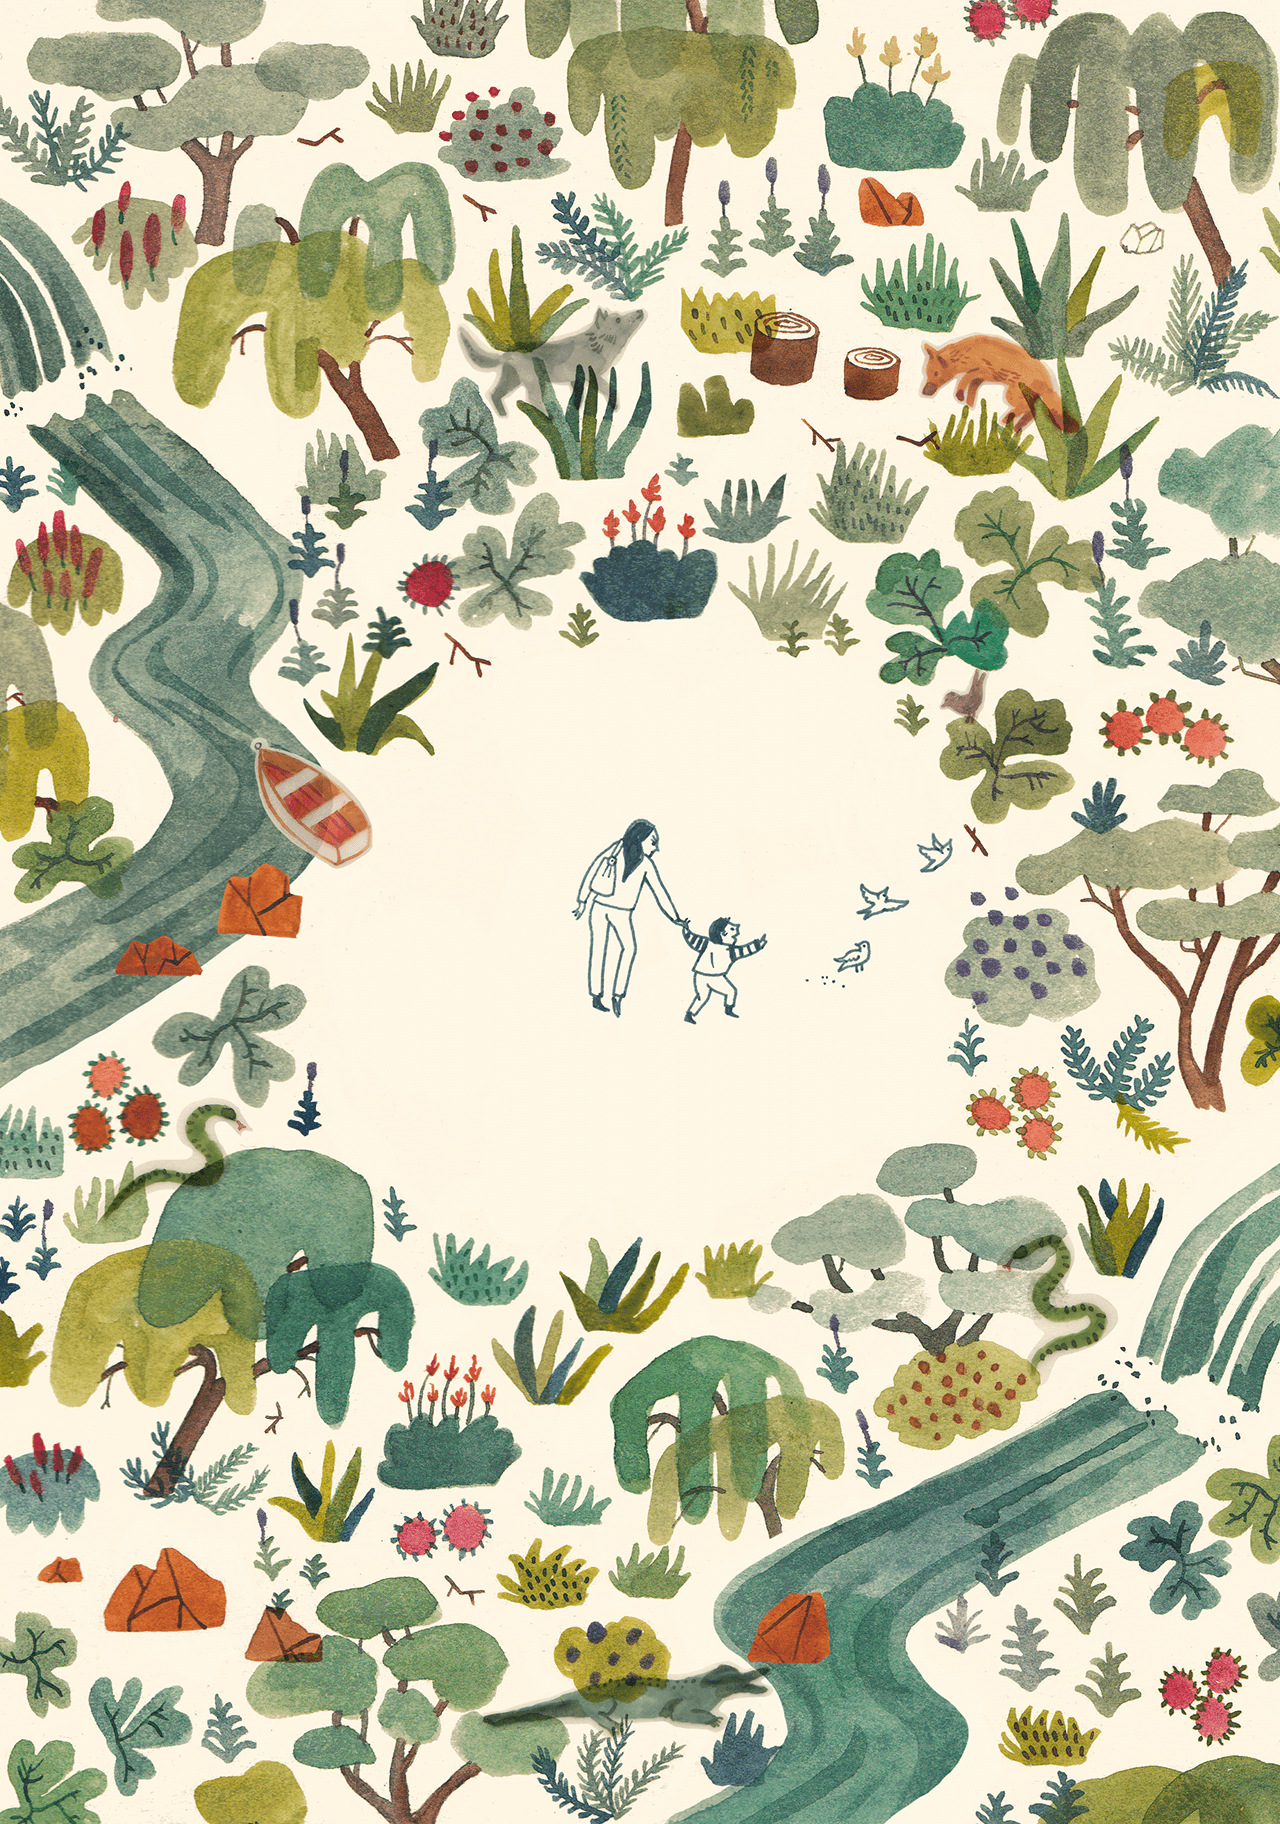 Editorial illustration of a woman and child in a forest